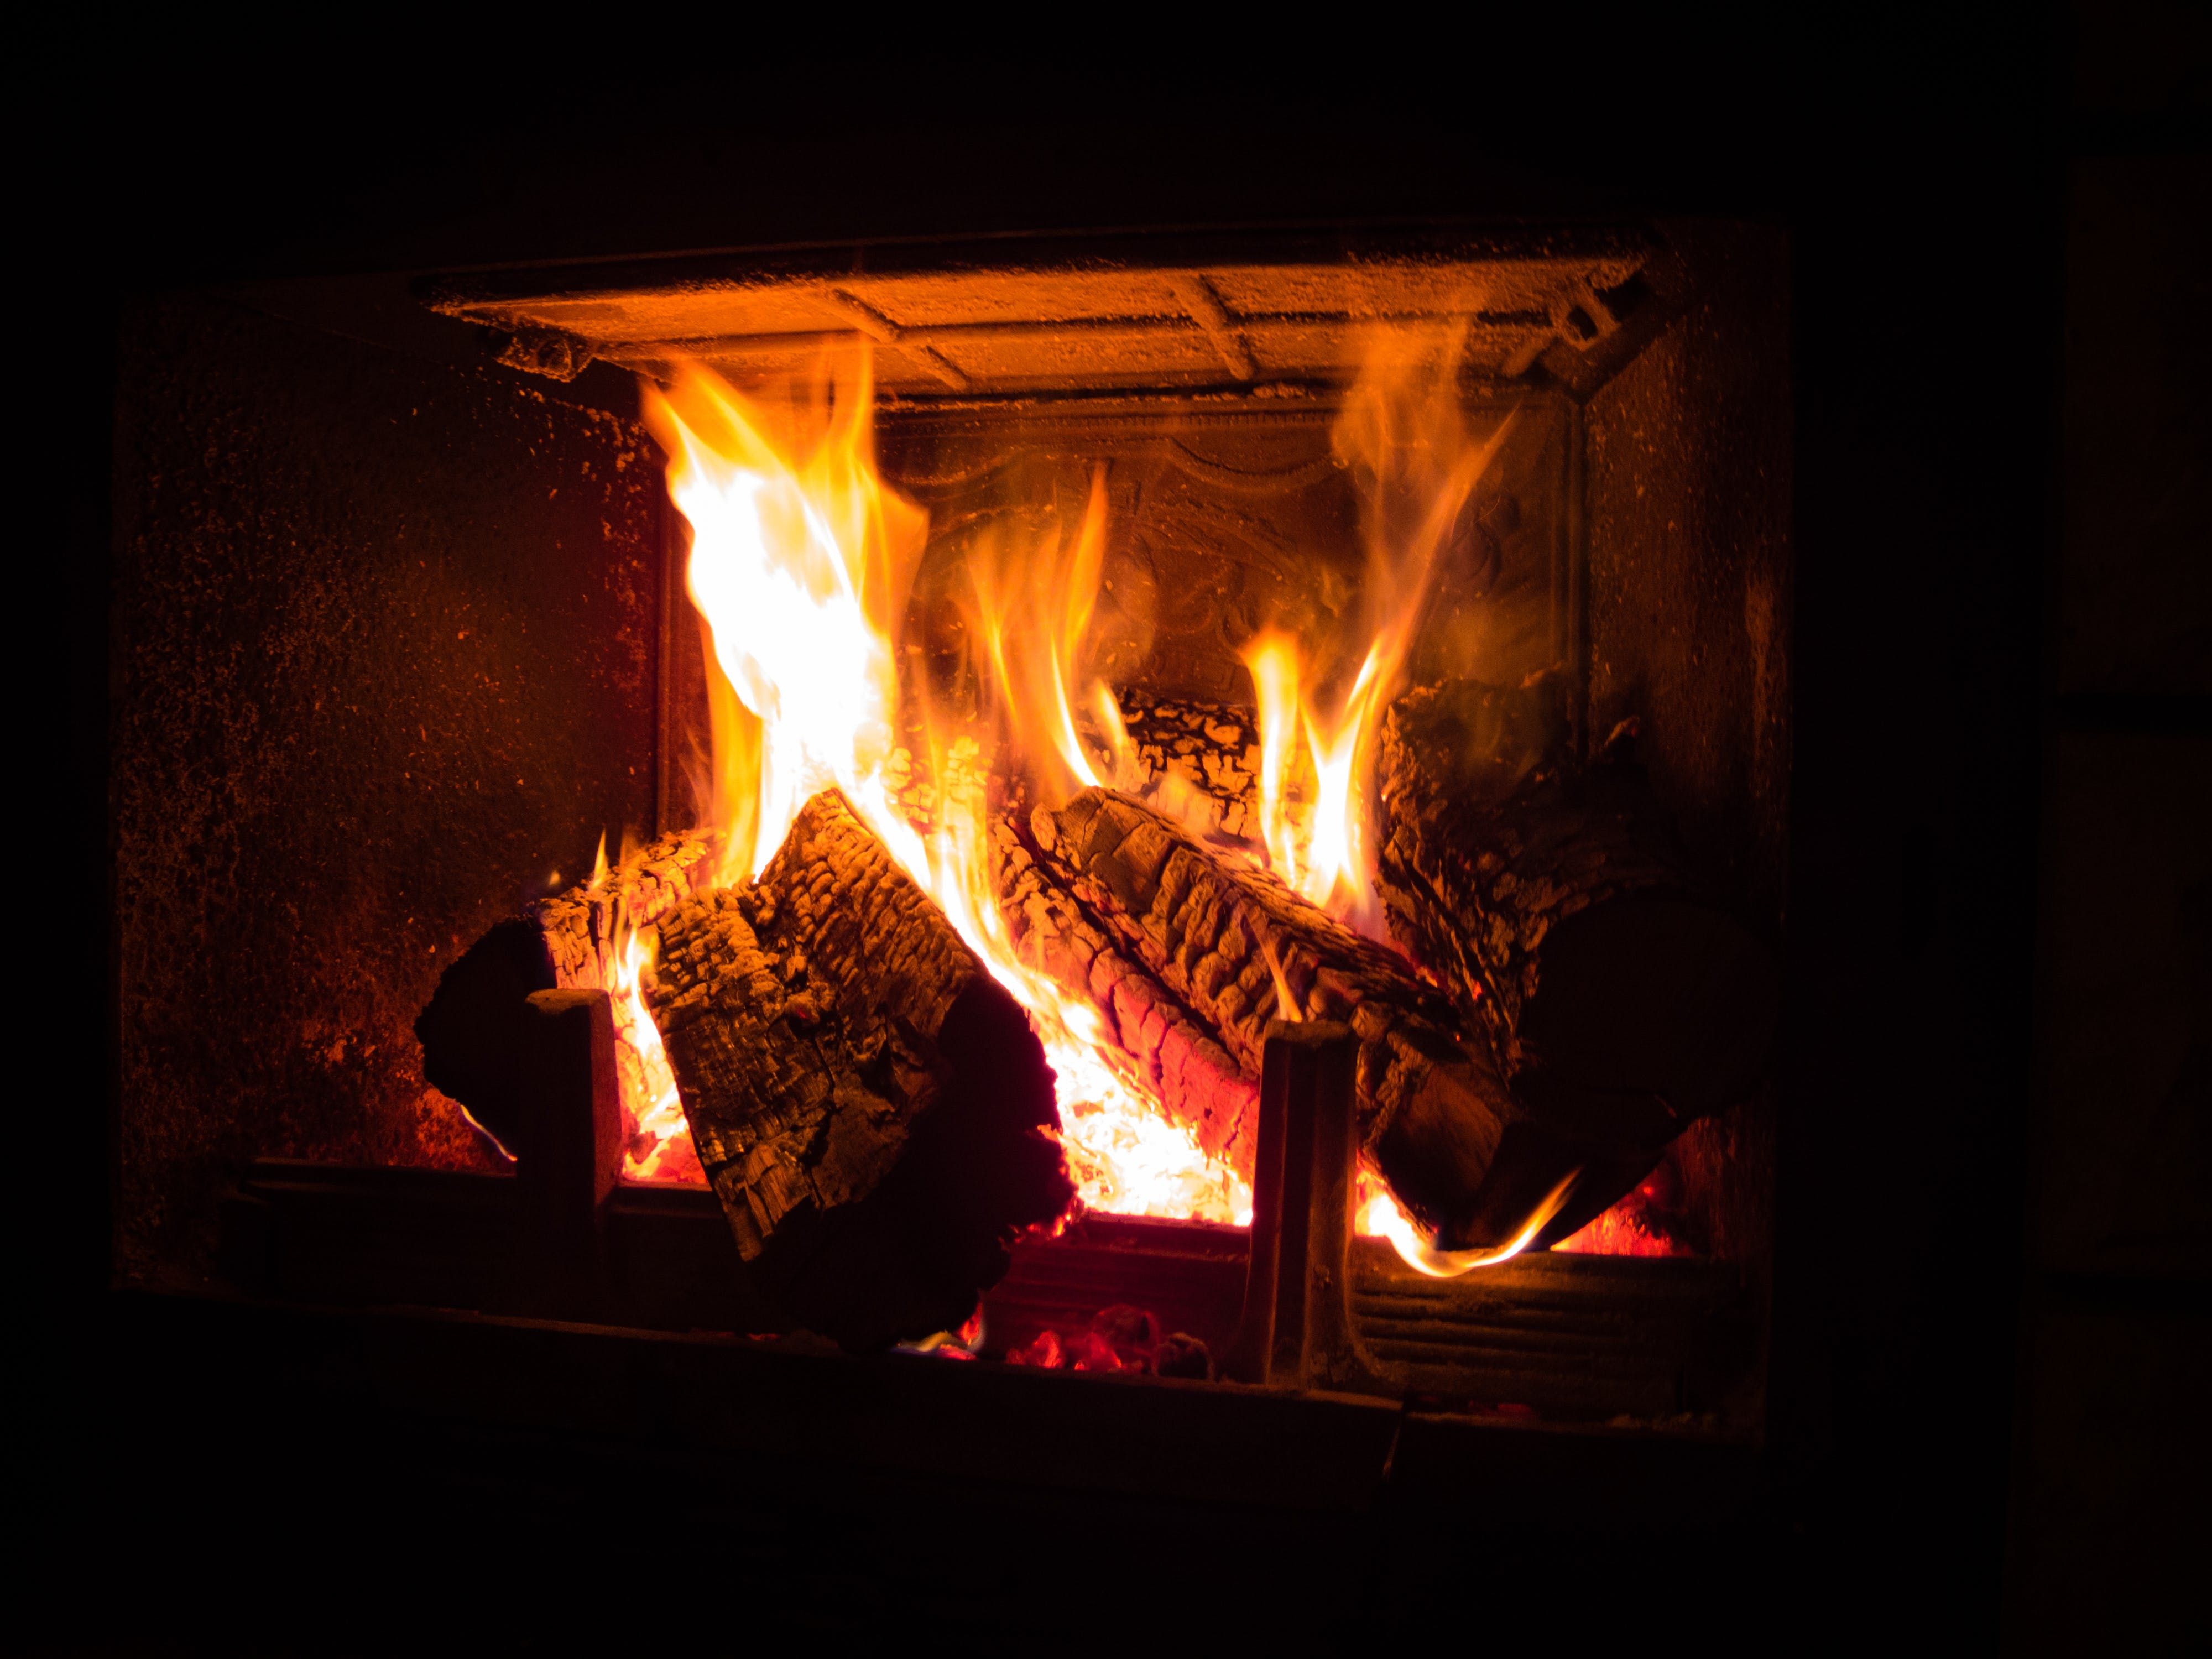 Free stock photo of relaxation, evening, fire, warm